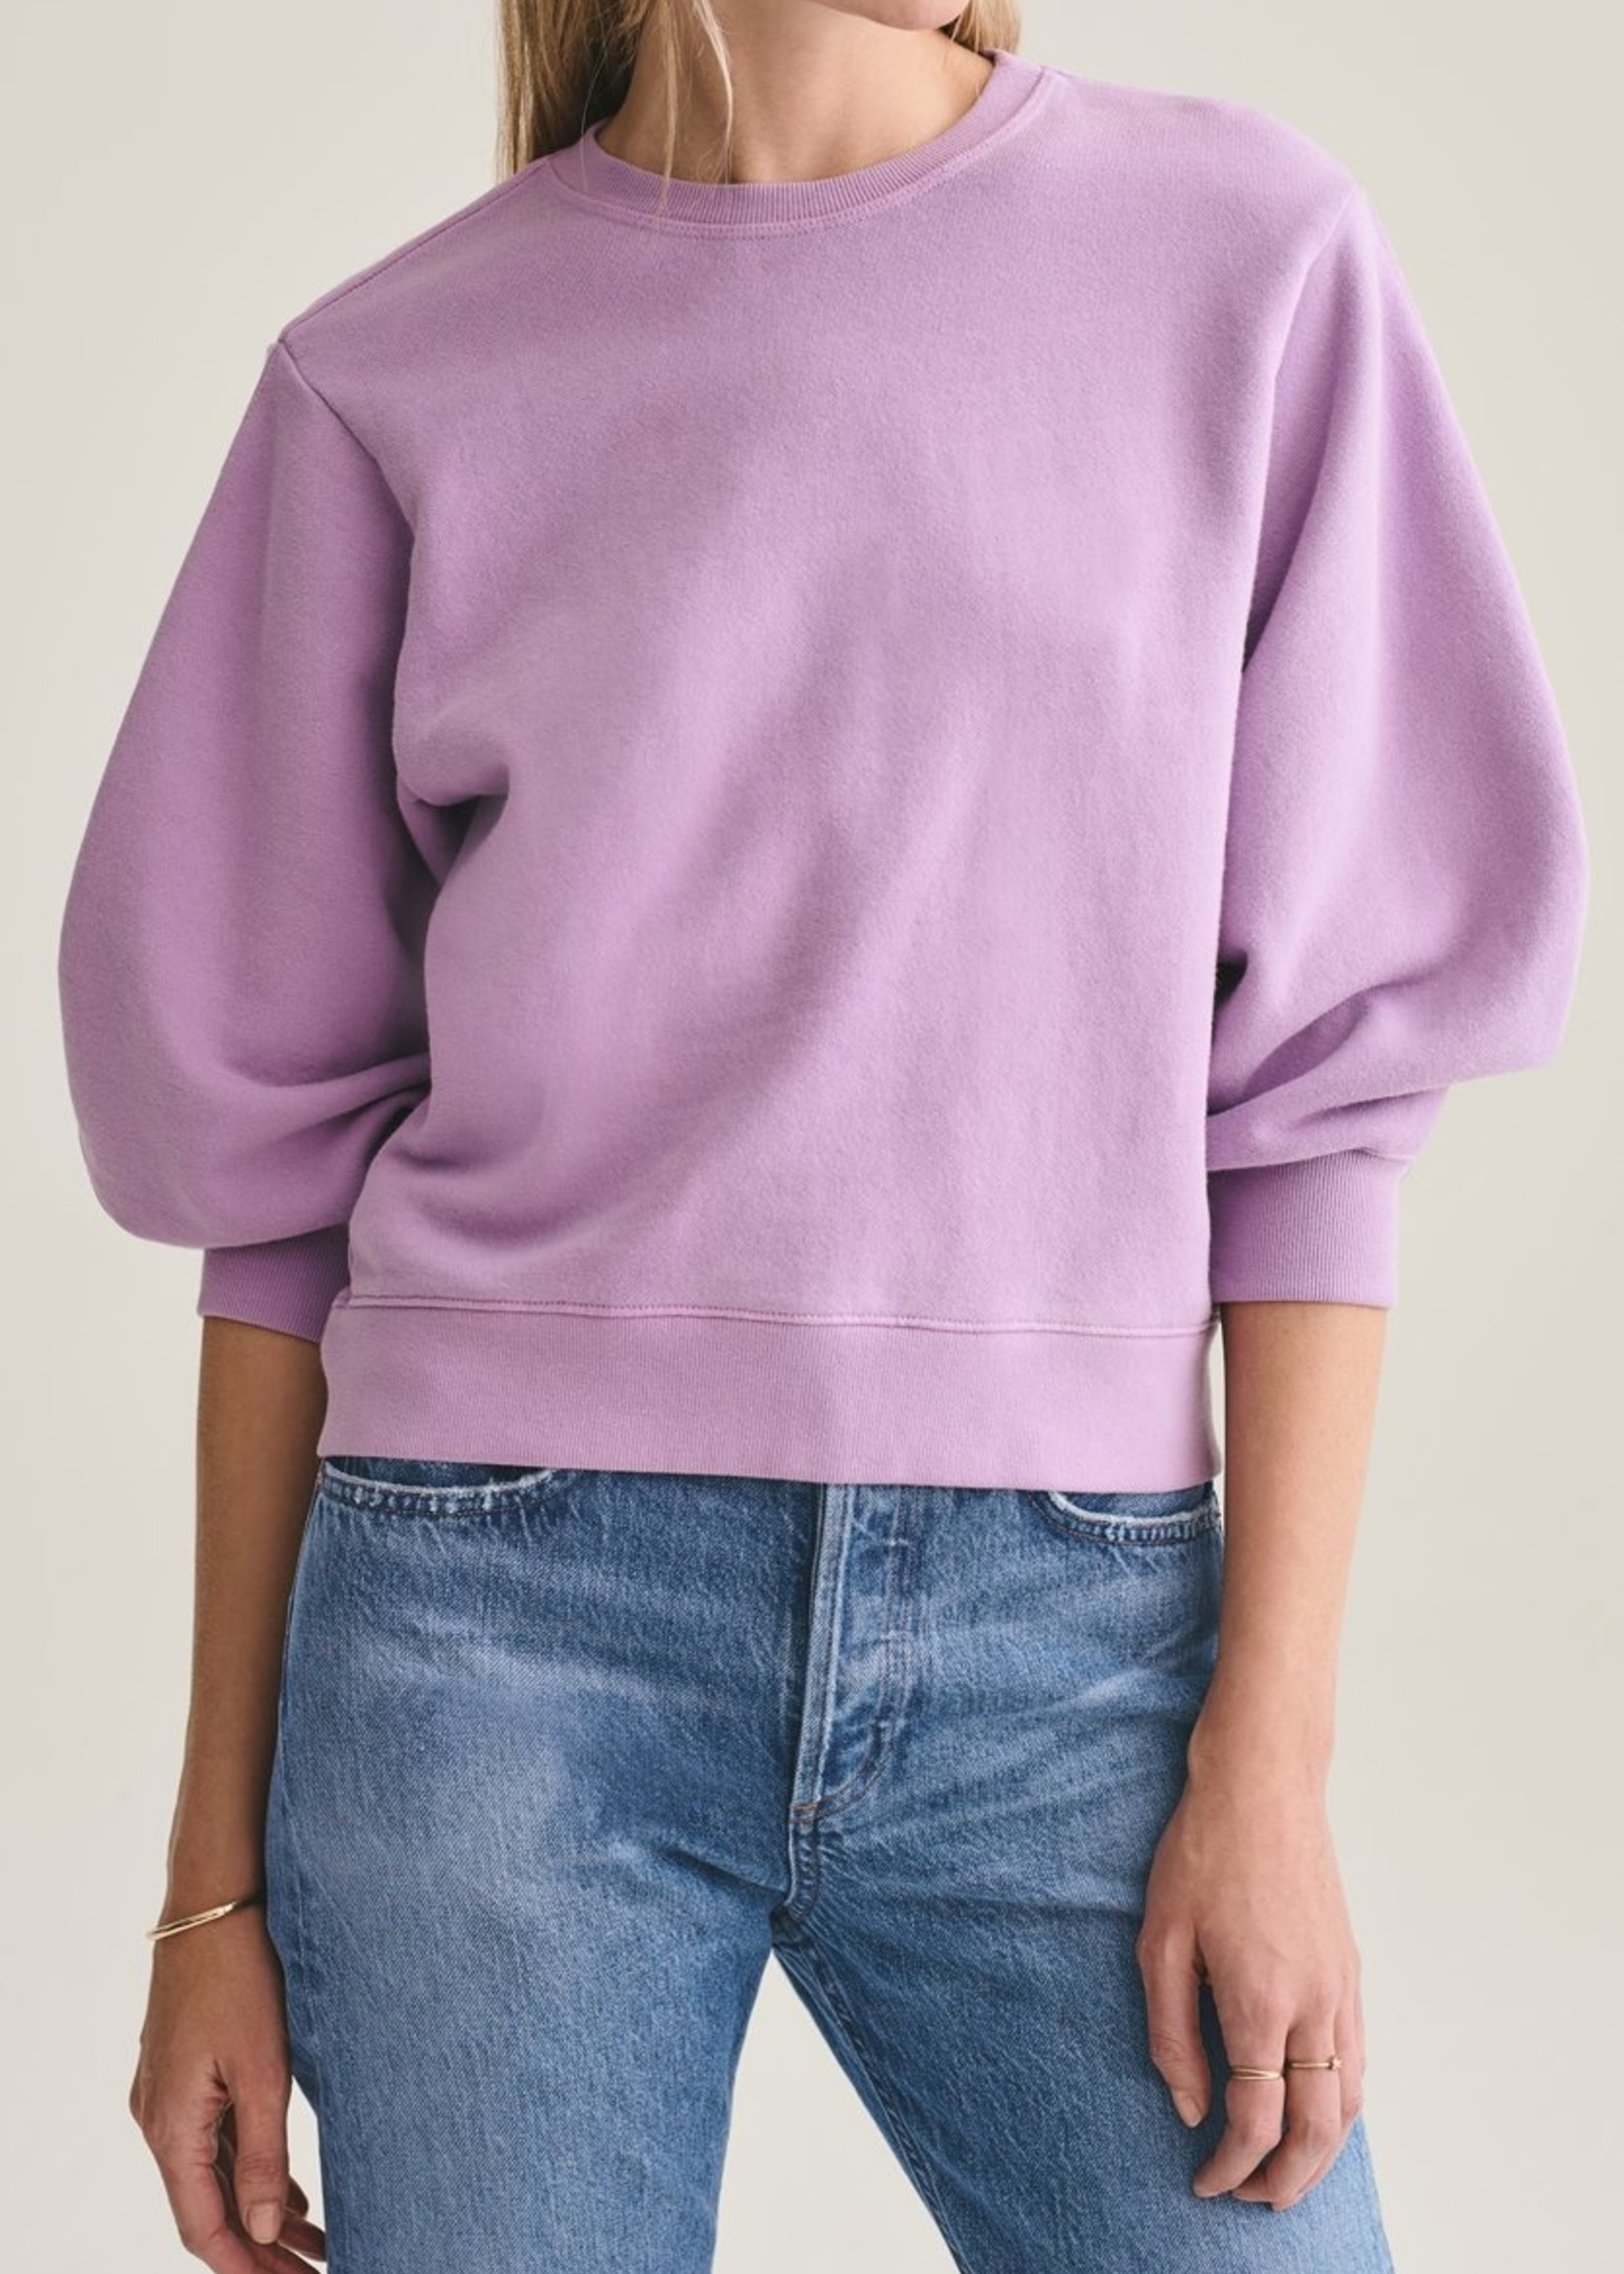 Elitaire Boutique Thora Sweatshirt